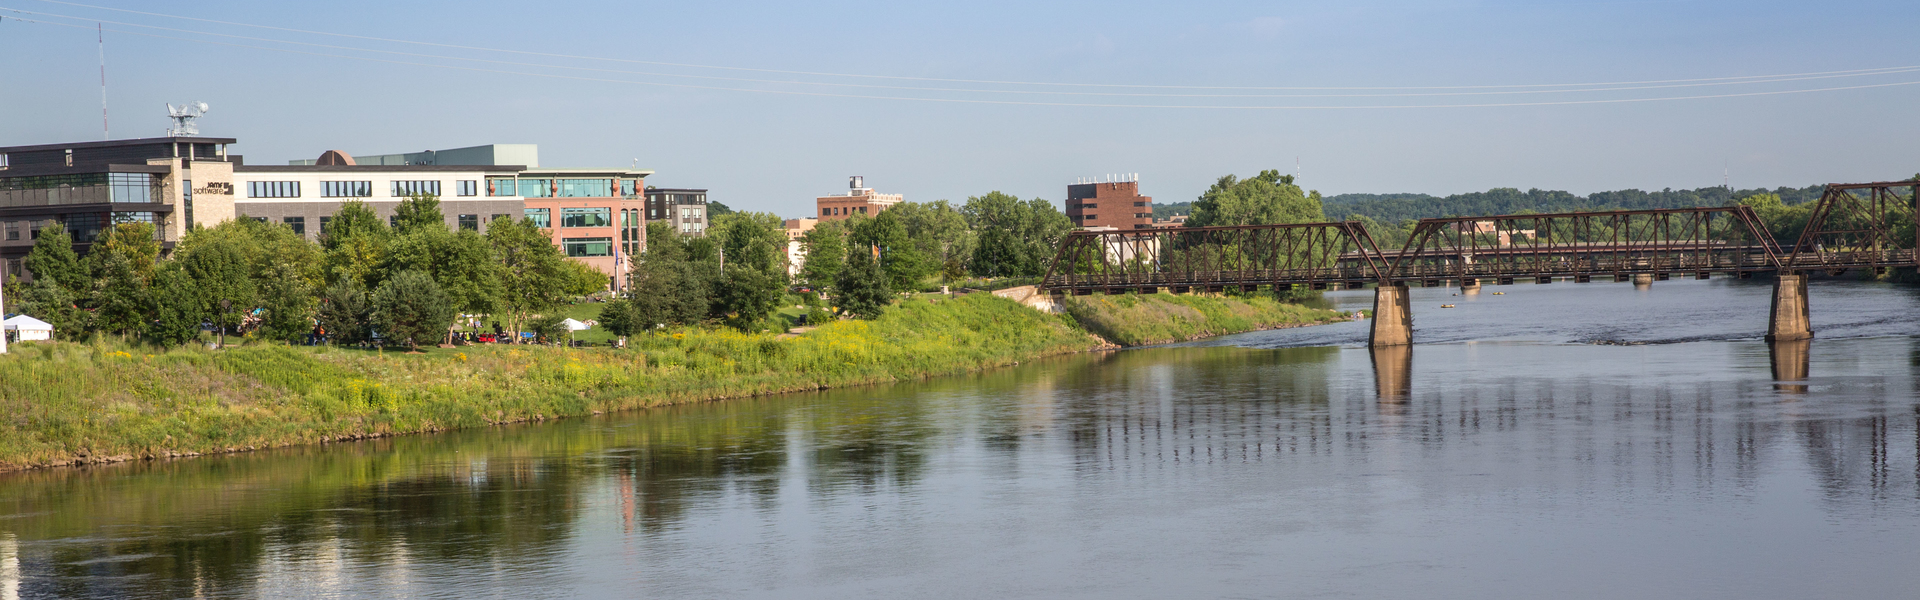 Eau Claire downtown landscape shot